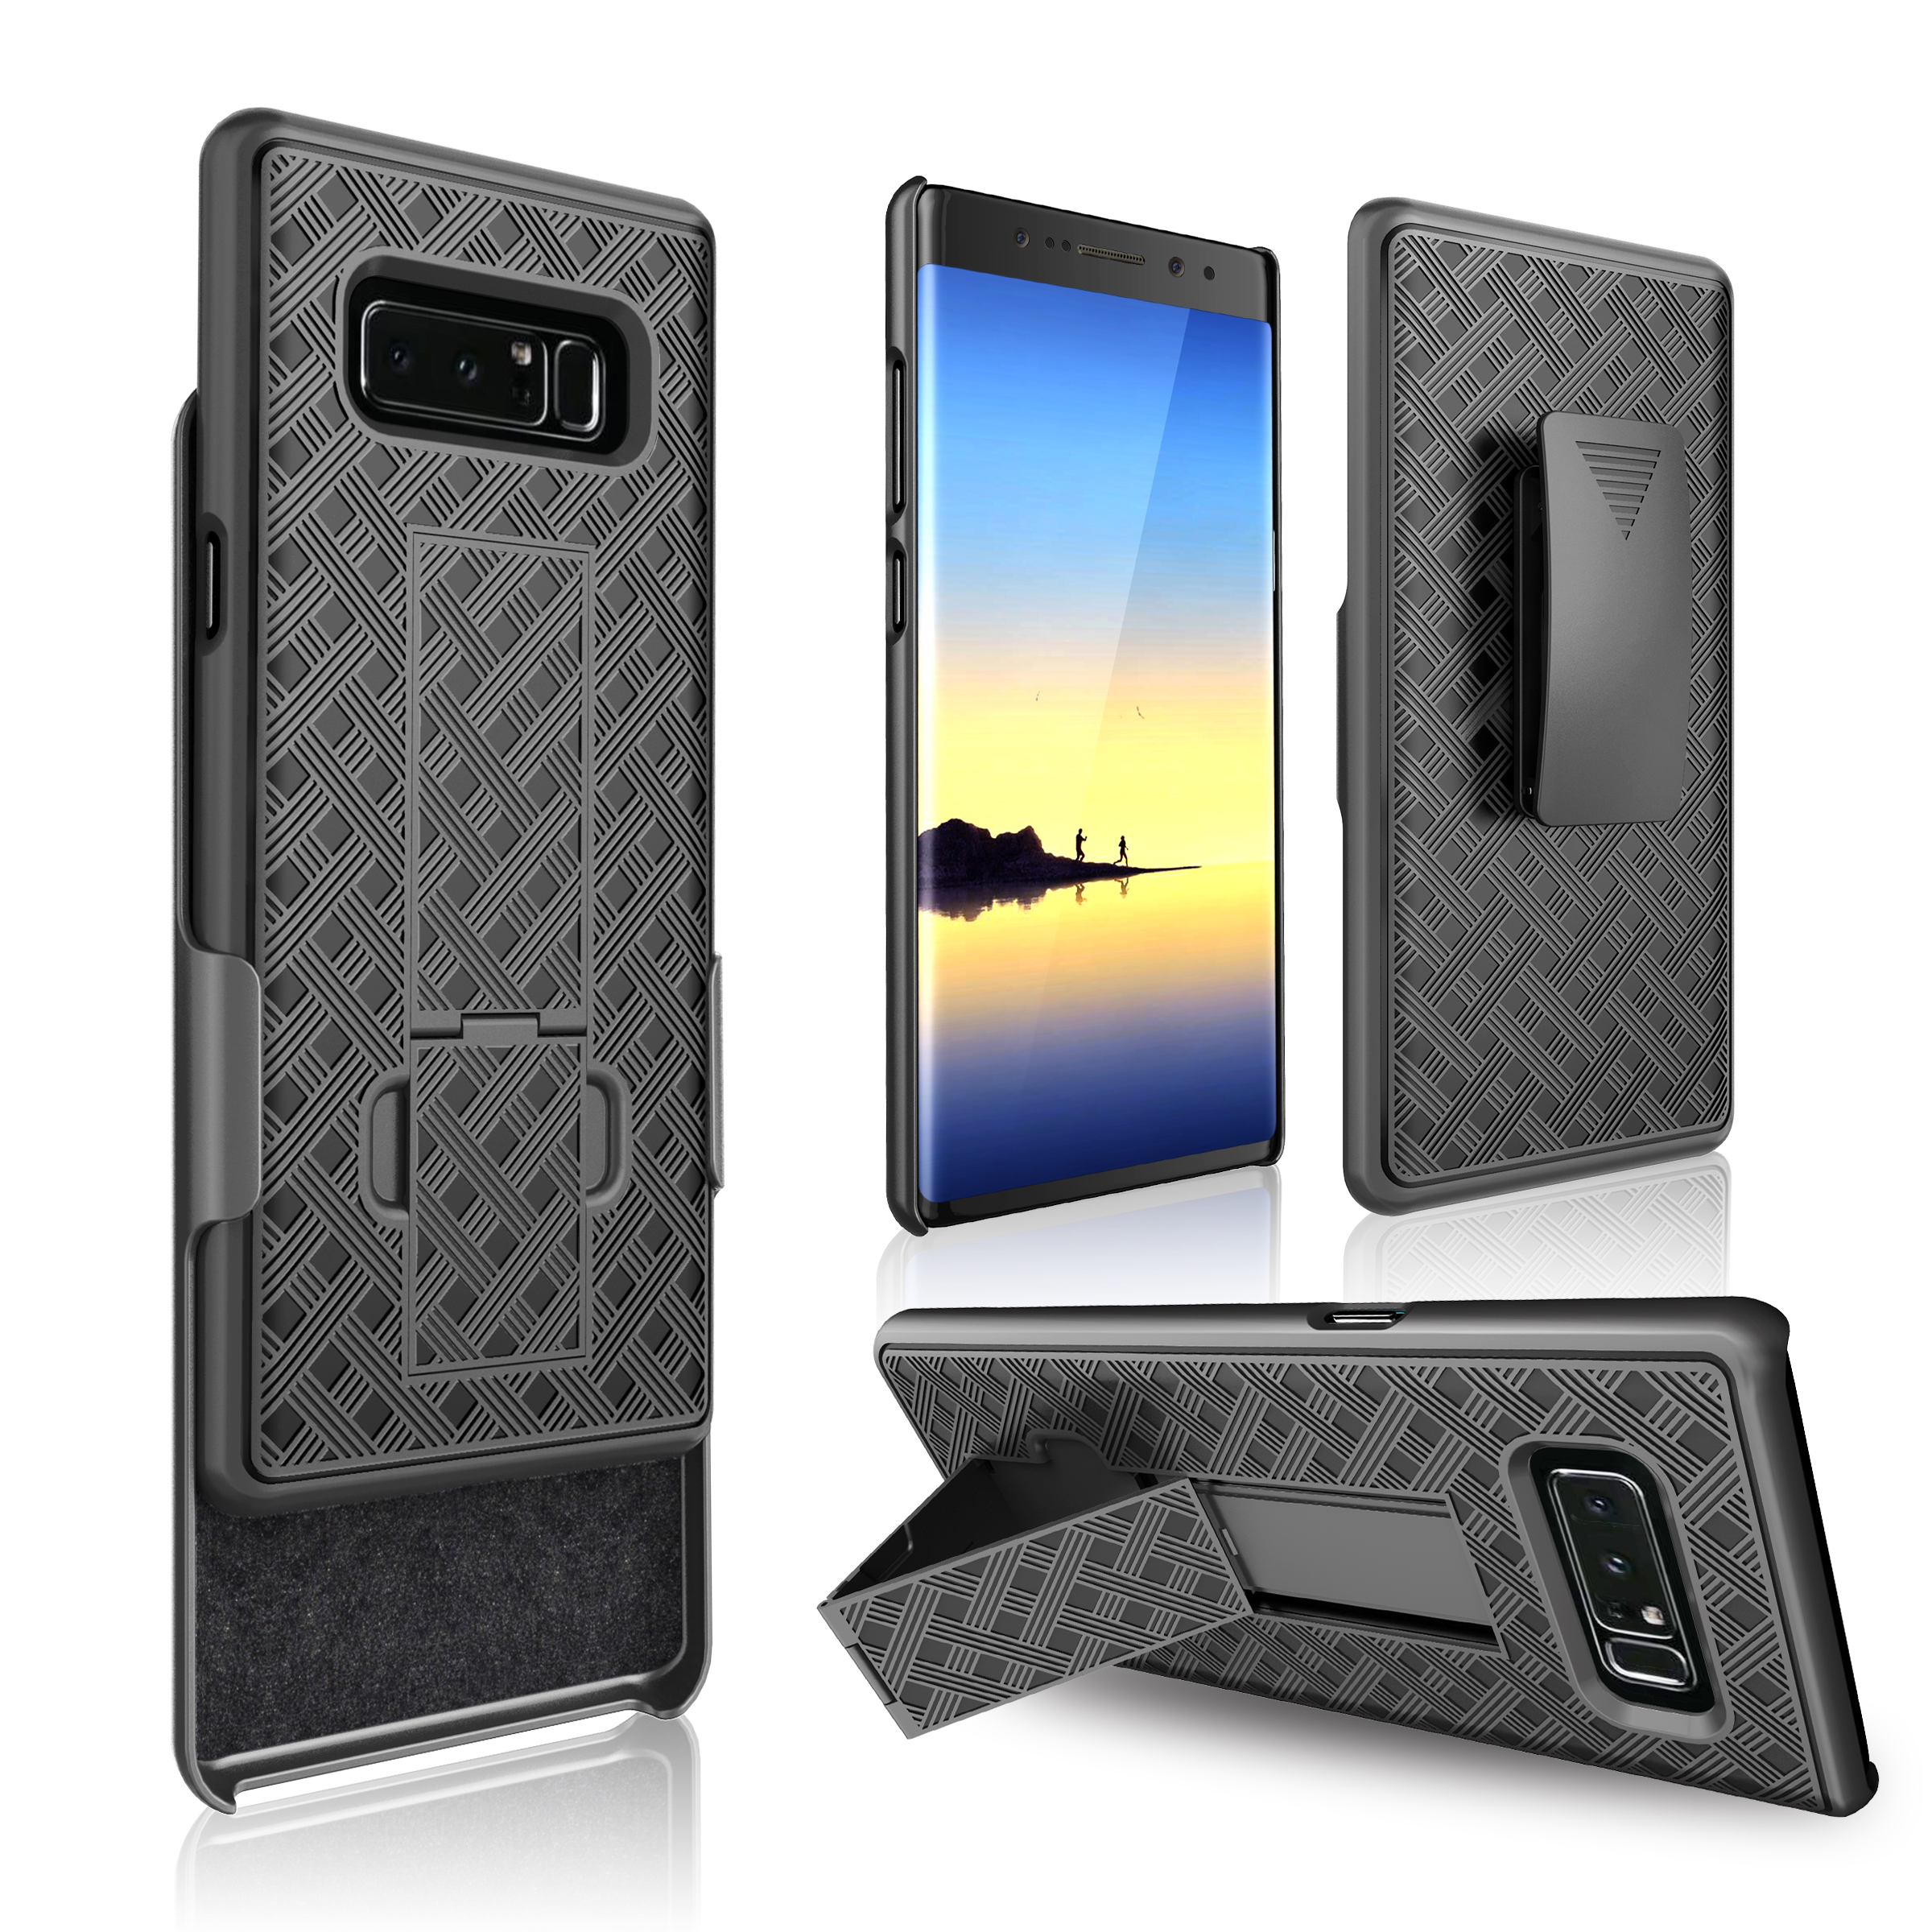 Bakeey 3 in 1 Woven Armor Belt Clip kickstand Protective Case for Samsung Galaxy Note 8